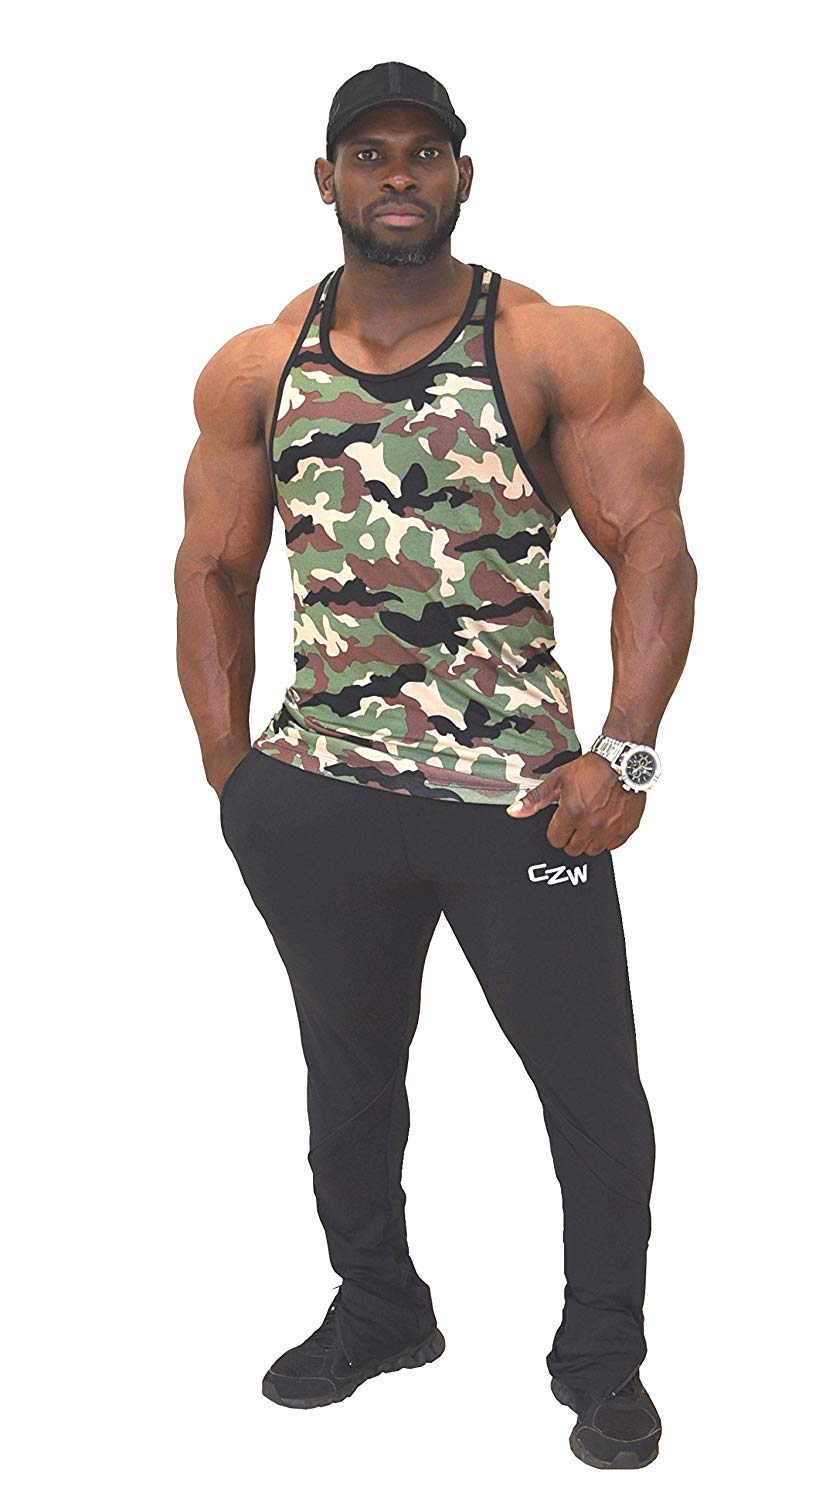 3e9a86153c080f Get Quotations · Fitted Camo Stringer Hardcore Bodybuilder Tank Top